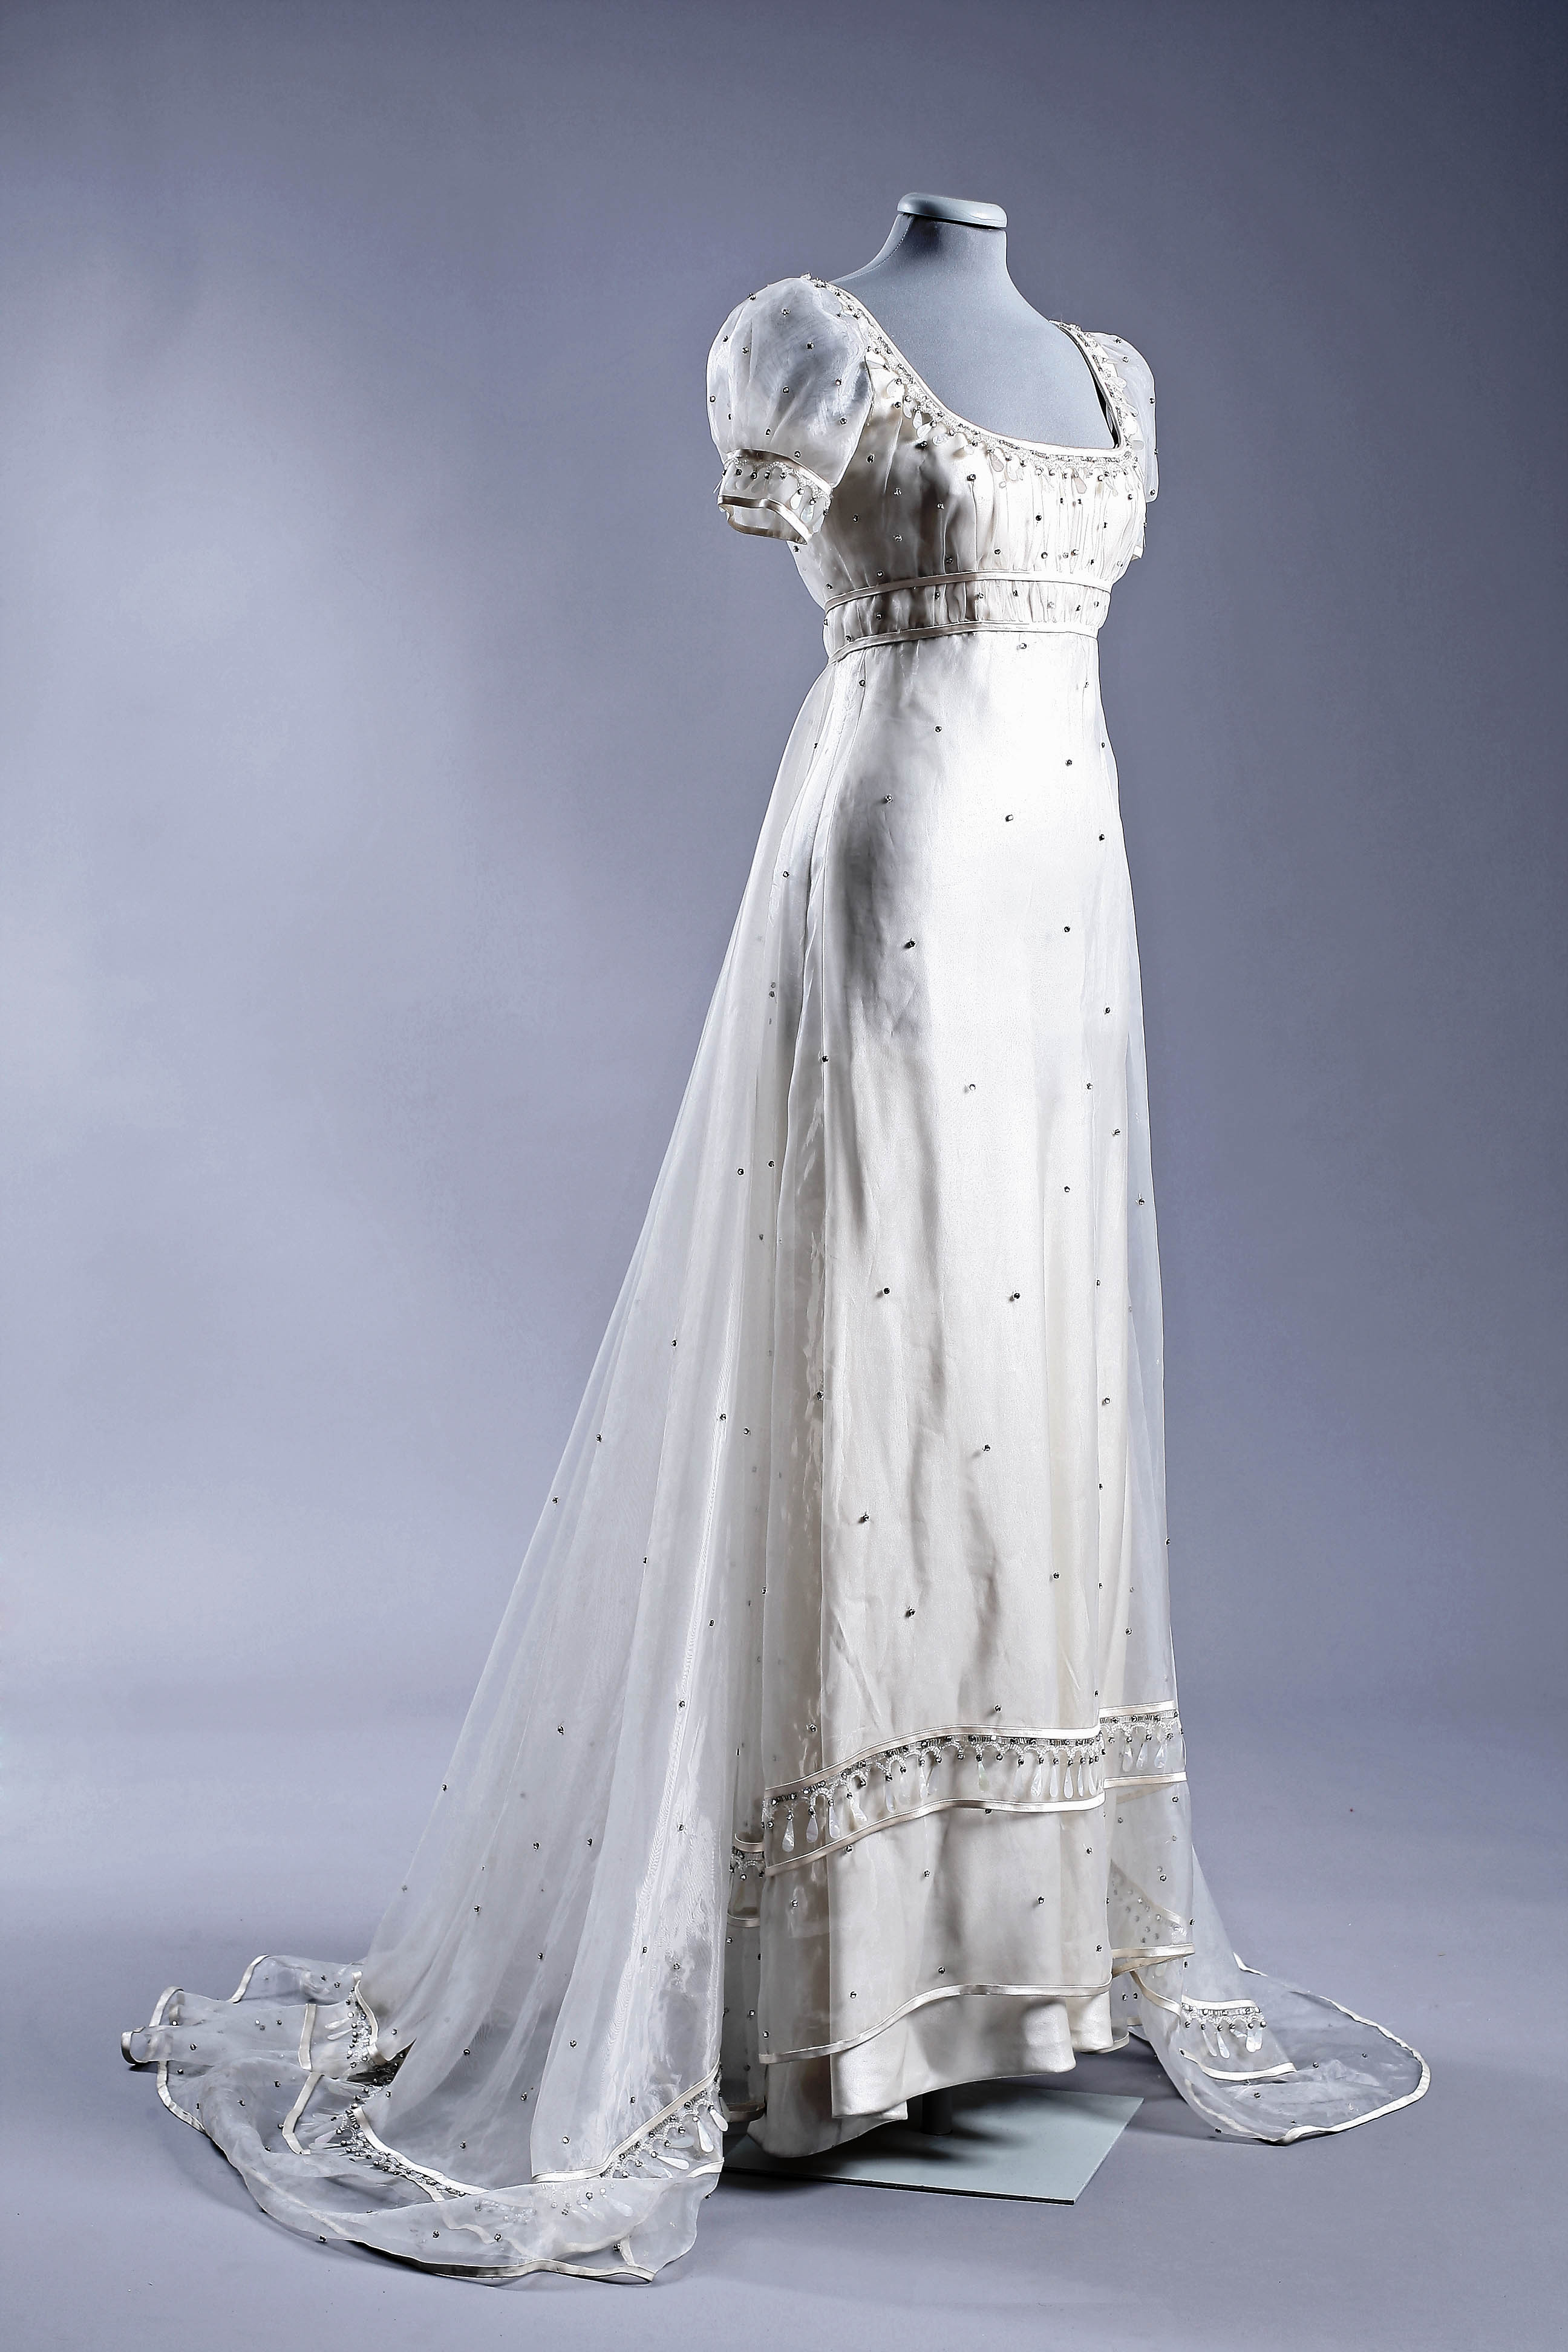 Audrey Hepburn's Gattinoni gown in War and Peace.